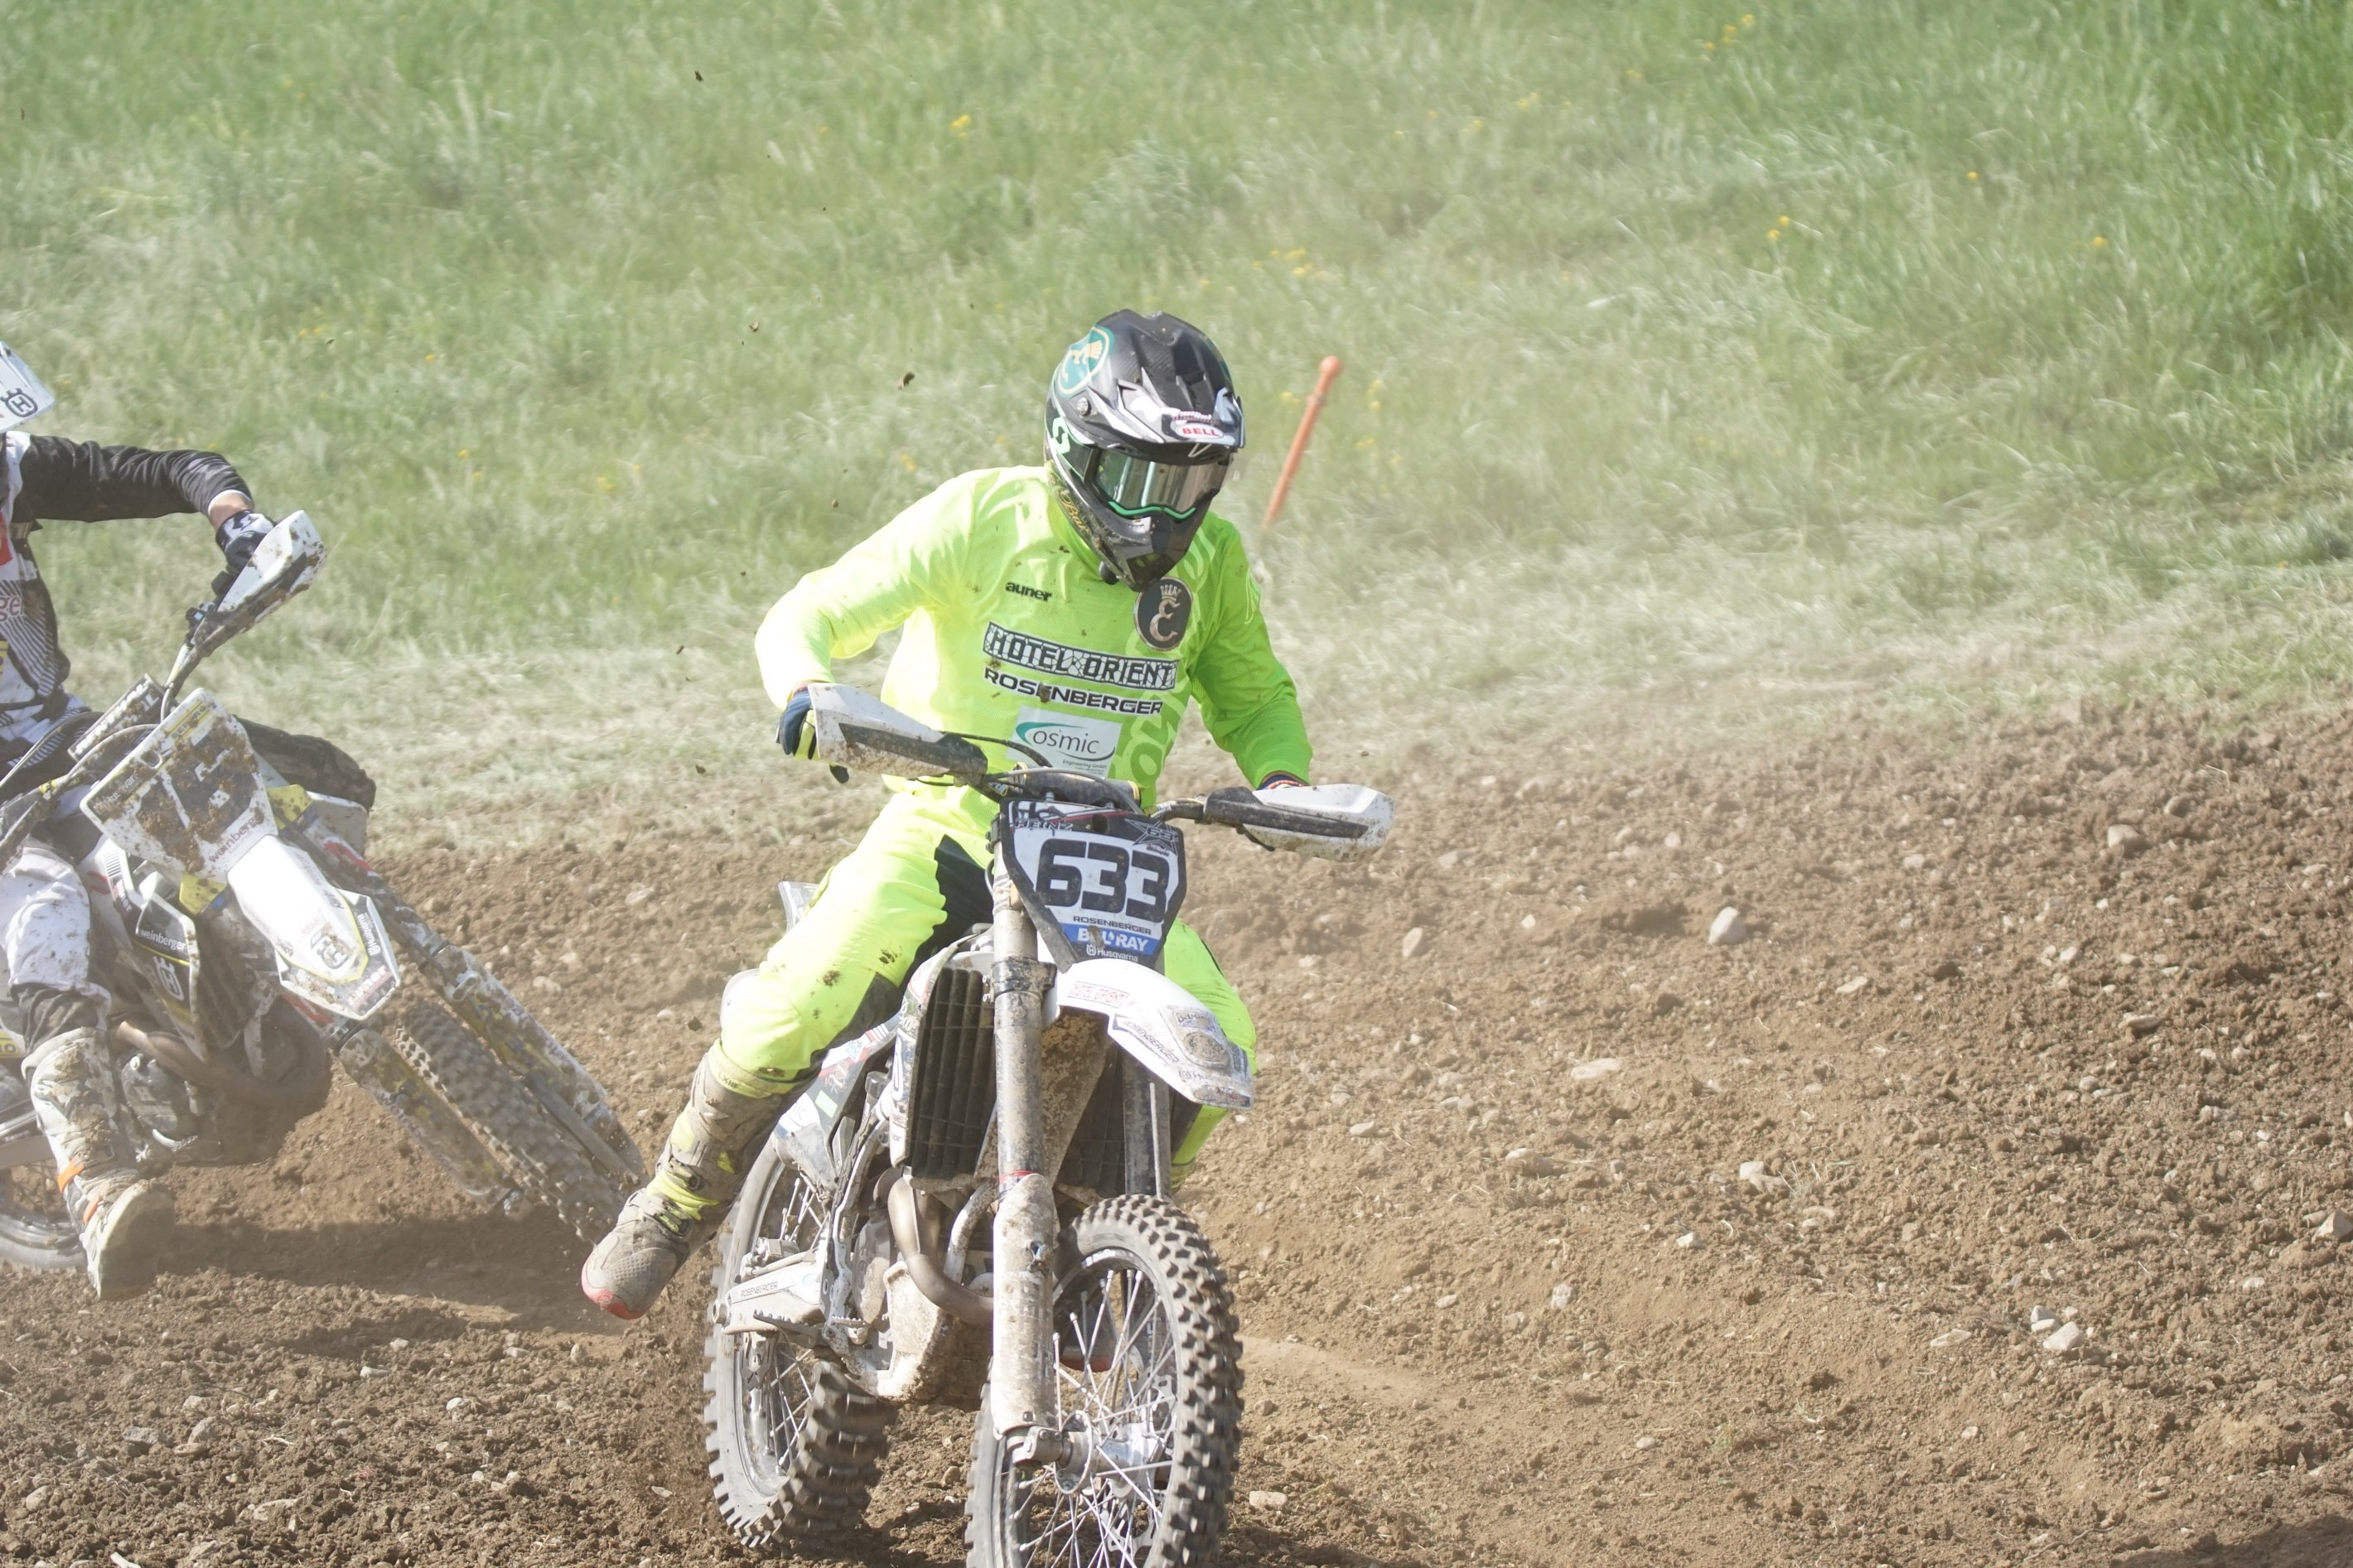 DSC 800_Moto Cross Sittendorf Teil1 am 29.04.2018